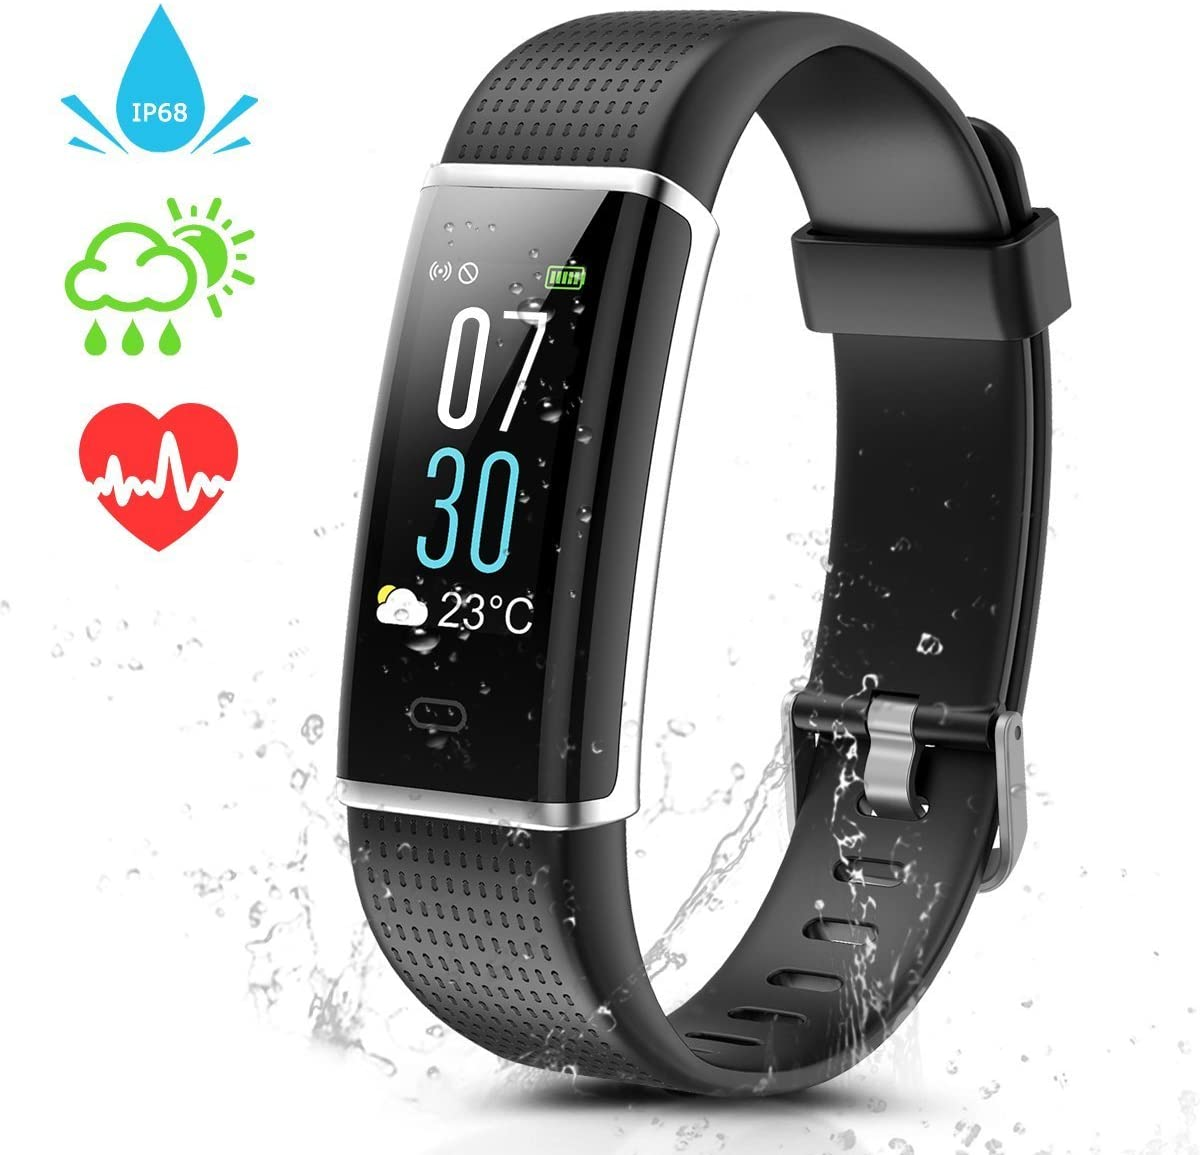 CAMTOA Fitness Tracker, ID130Plus Color HR Activity Wristband with Heart Rate Monitor/ IP67 0.96''OLED Sports Watch/Sleep Monitoring/GPS Track/Weather Forecast/Notification Reminder/Camera Control